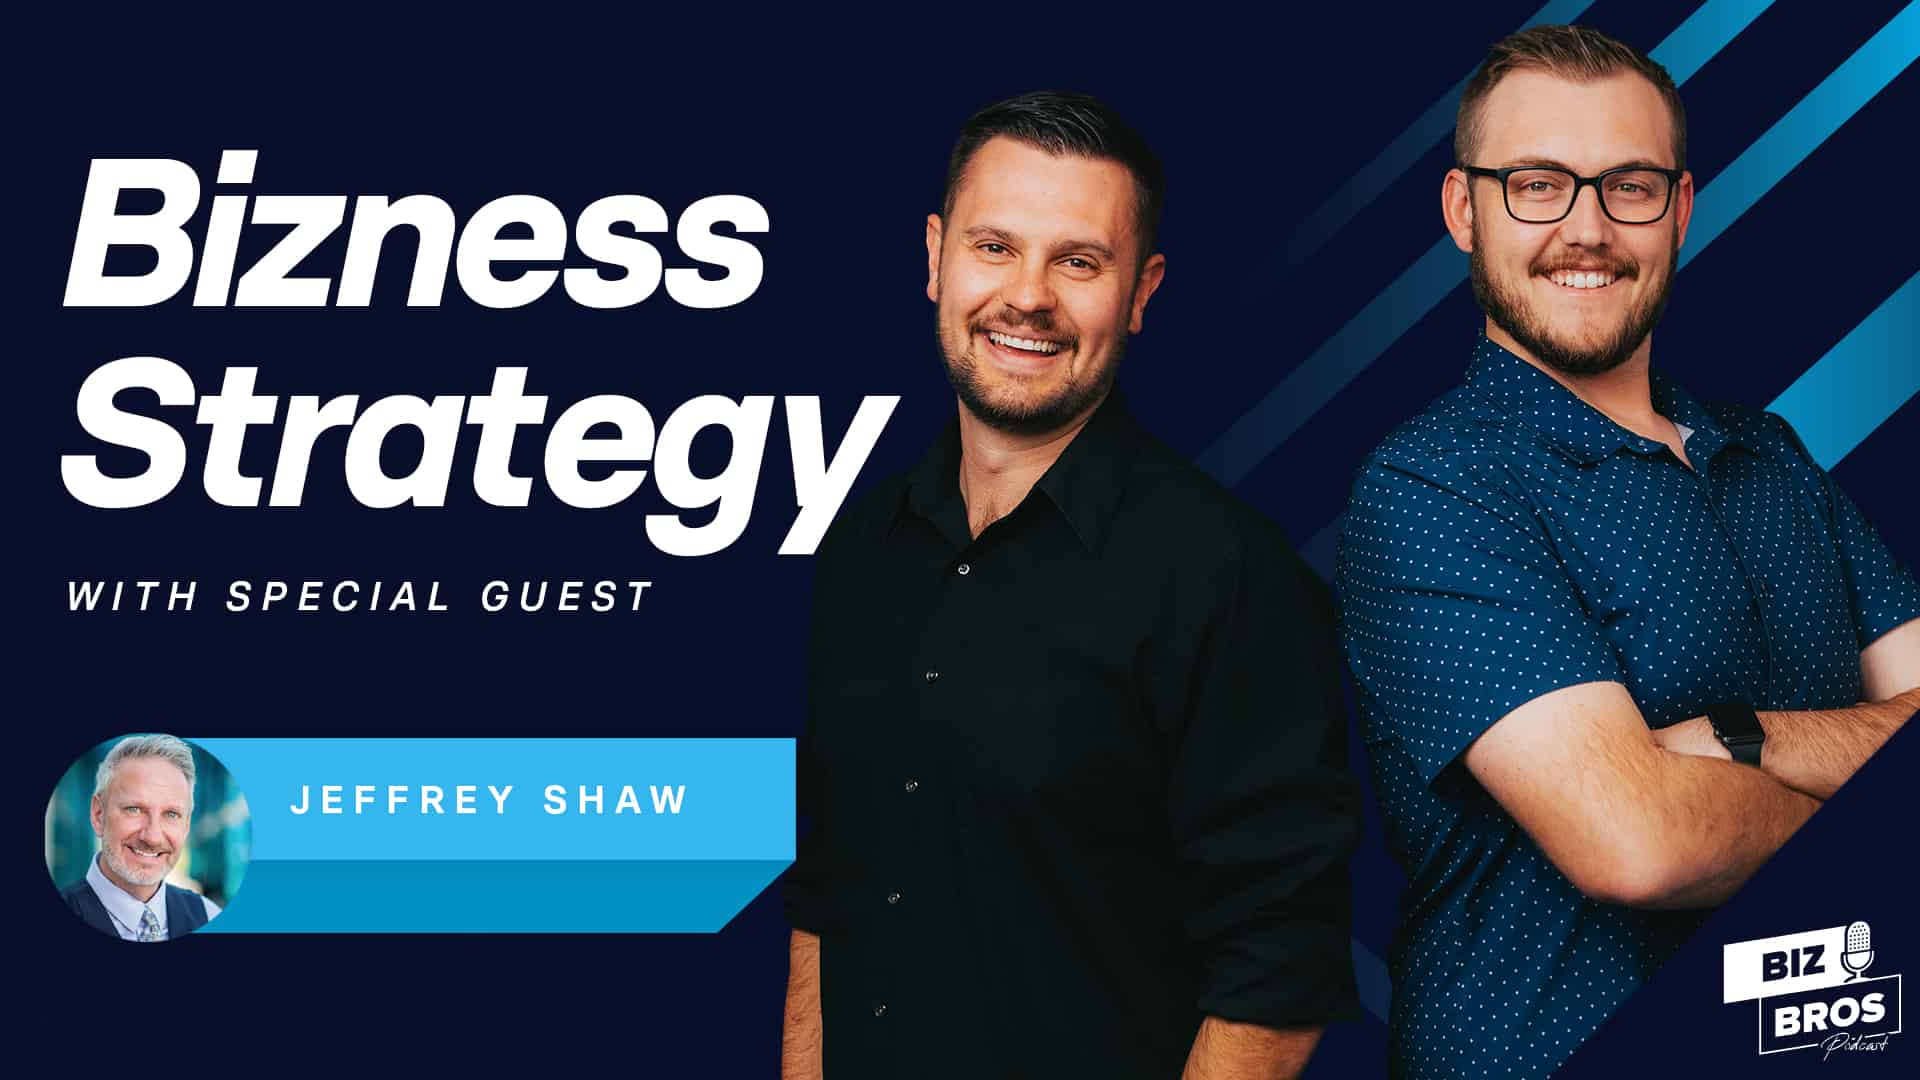 The Self Employed Ecosystems - The Balance Of A Healthy Business and Life with Jeffrey Shaw